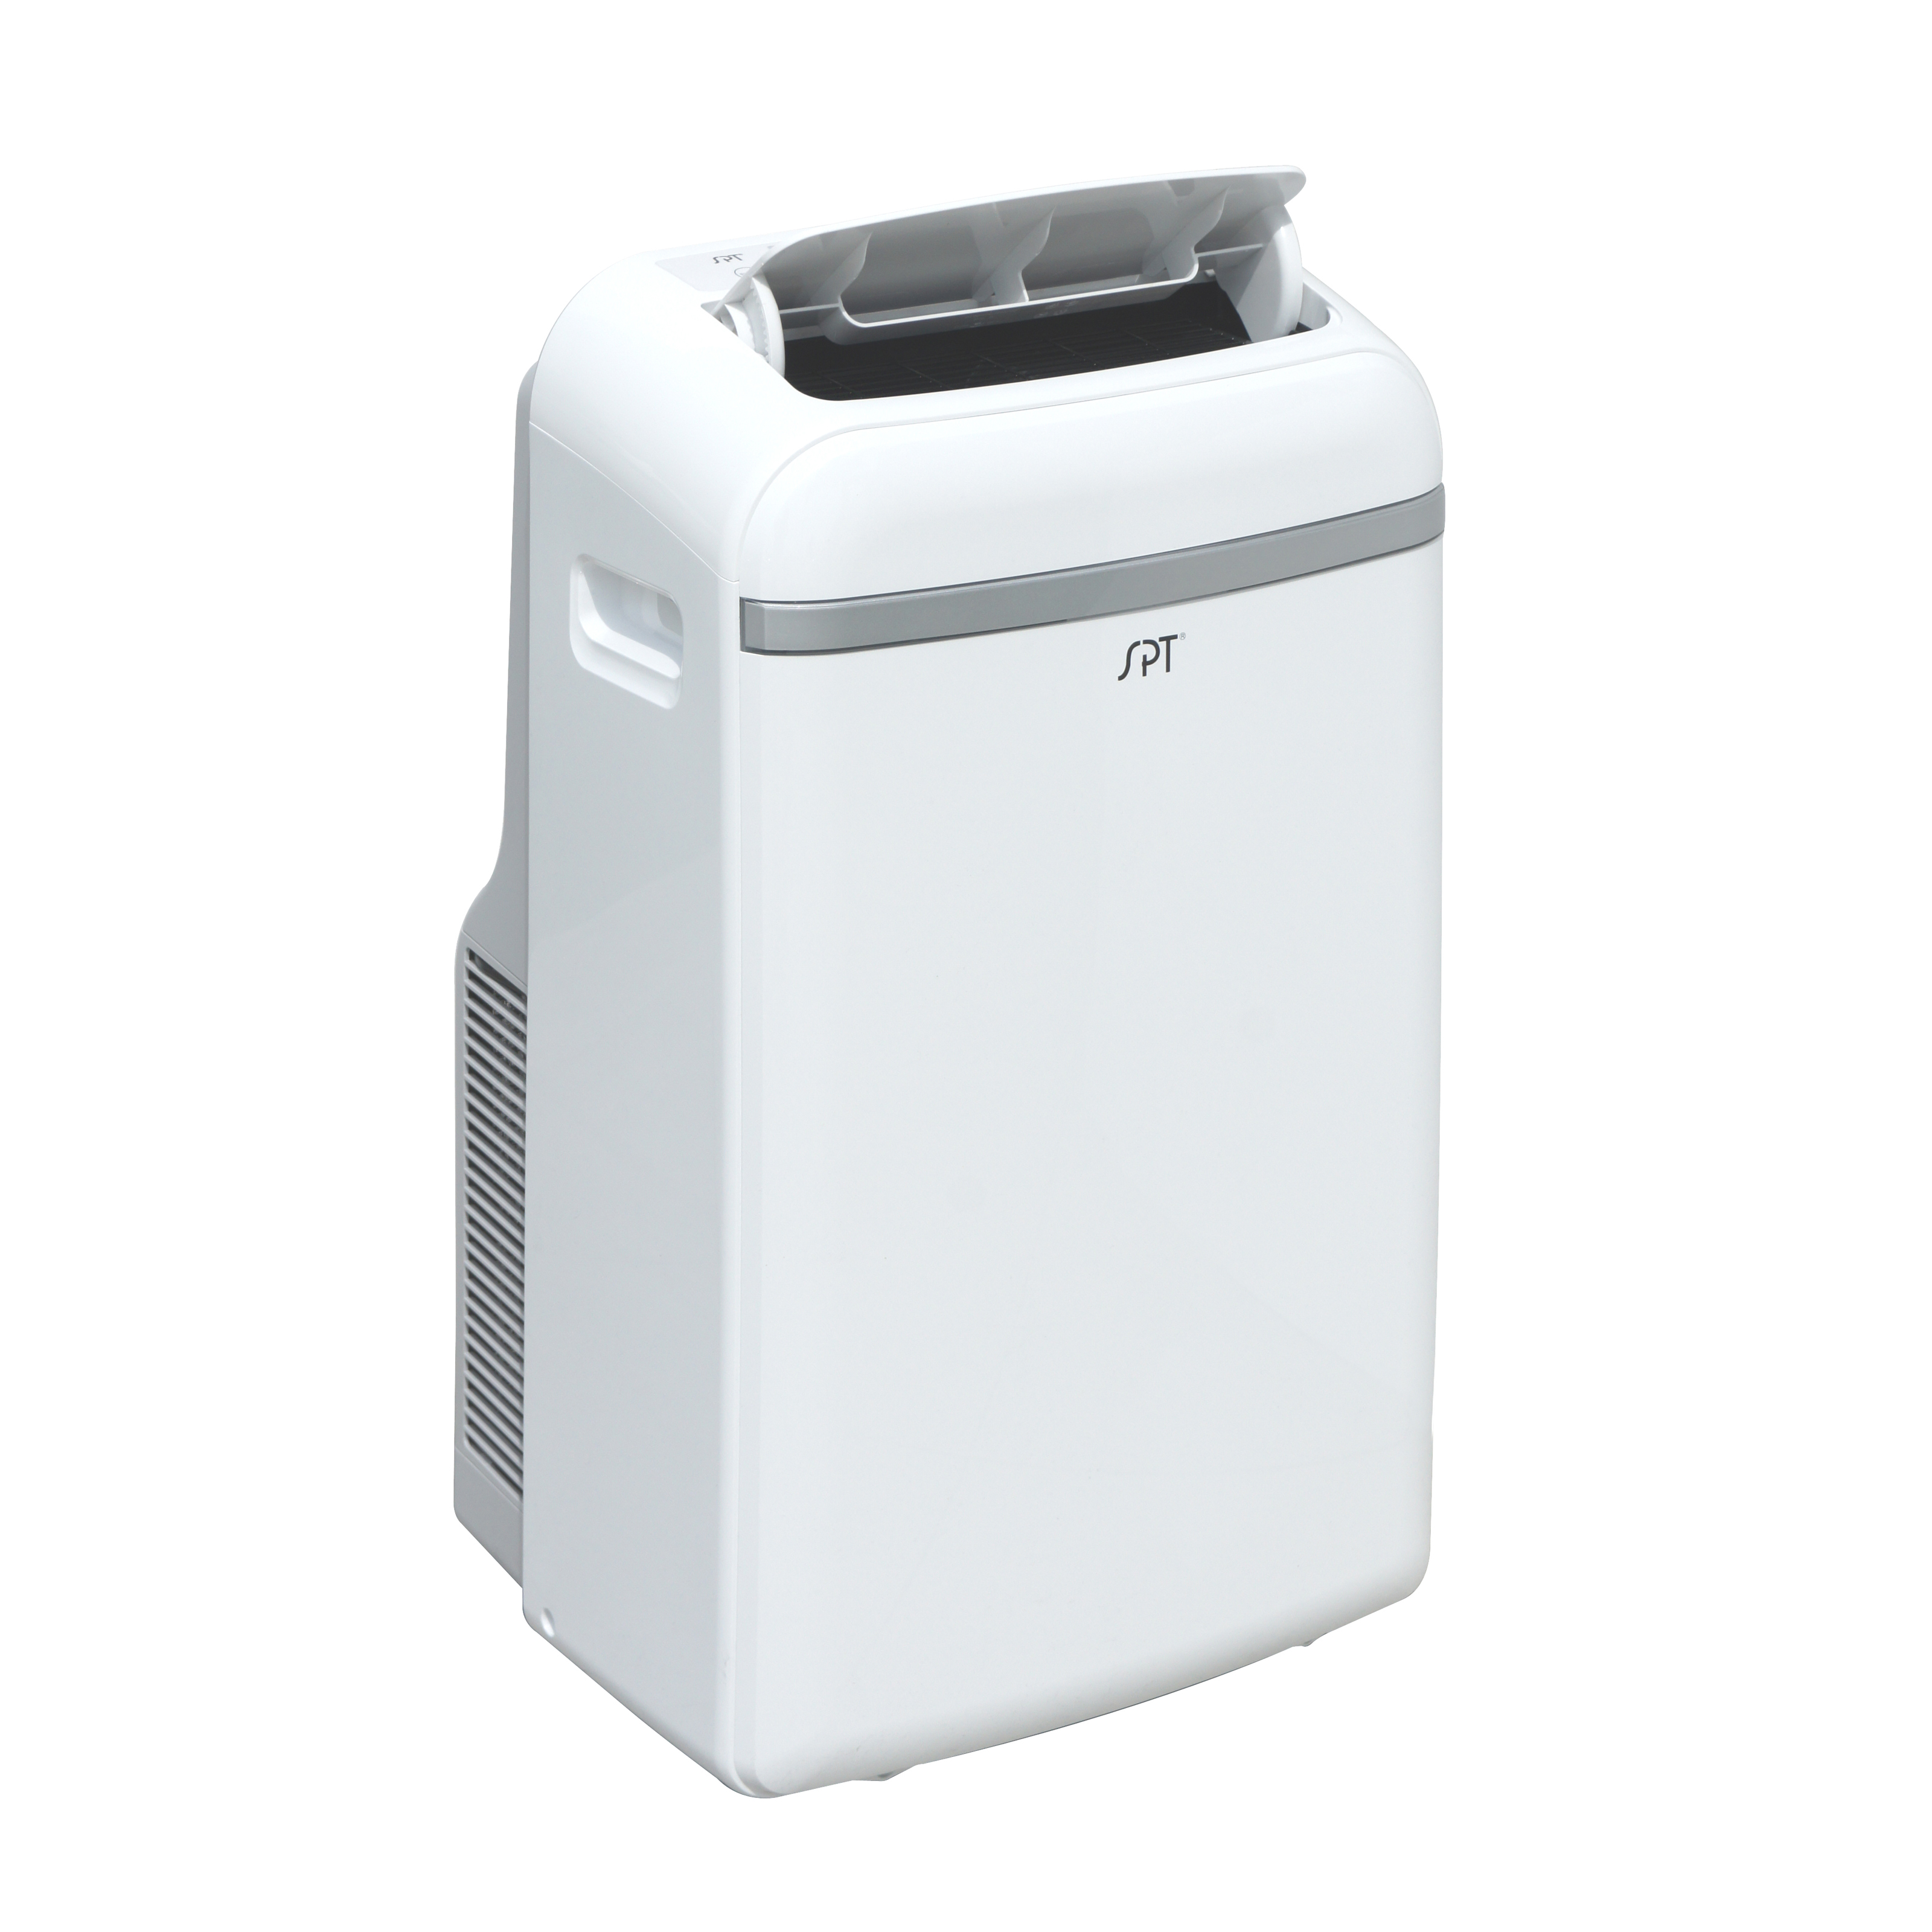 Portable Air Conditioner with Heater 14000 BTU Air Conditioners at #576A74